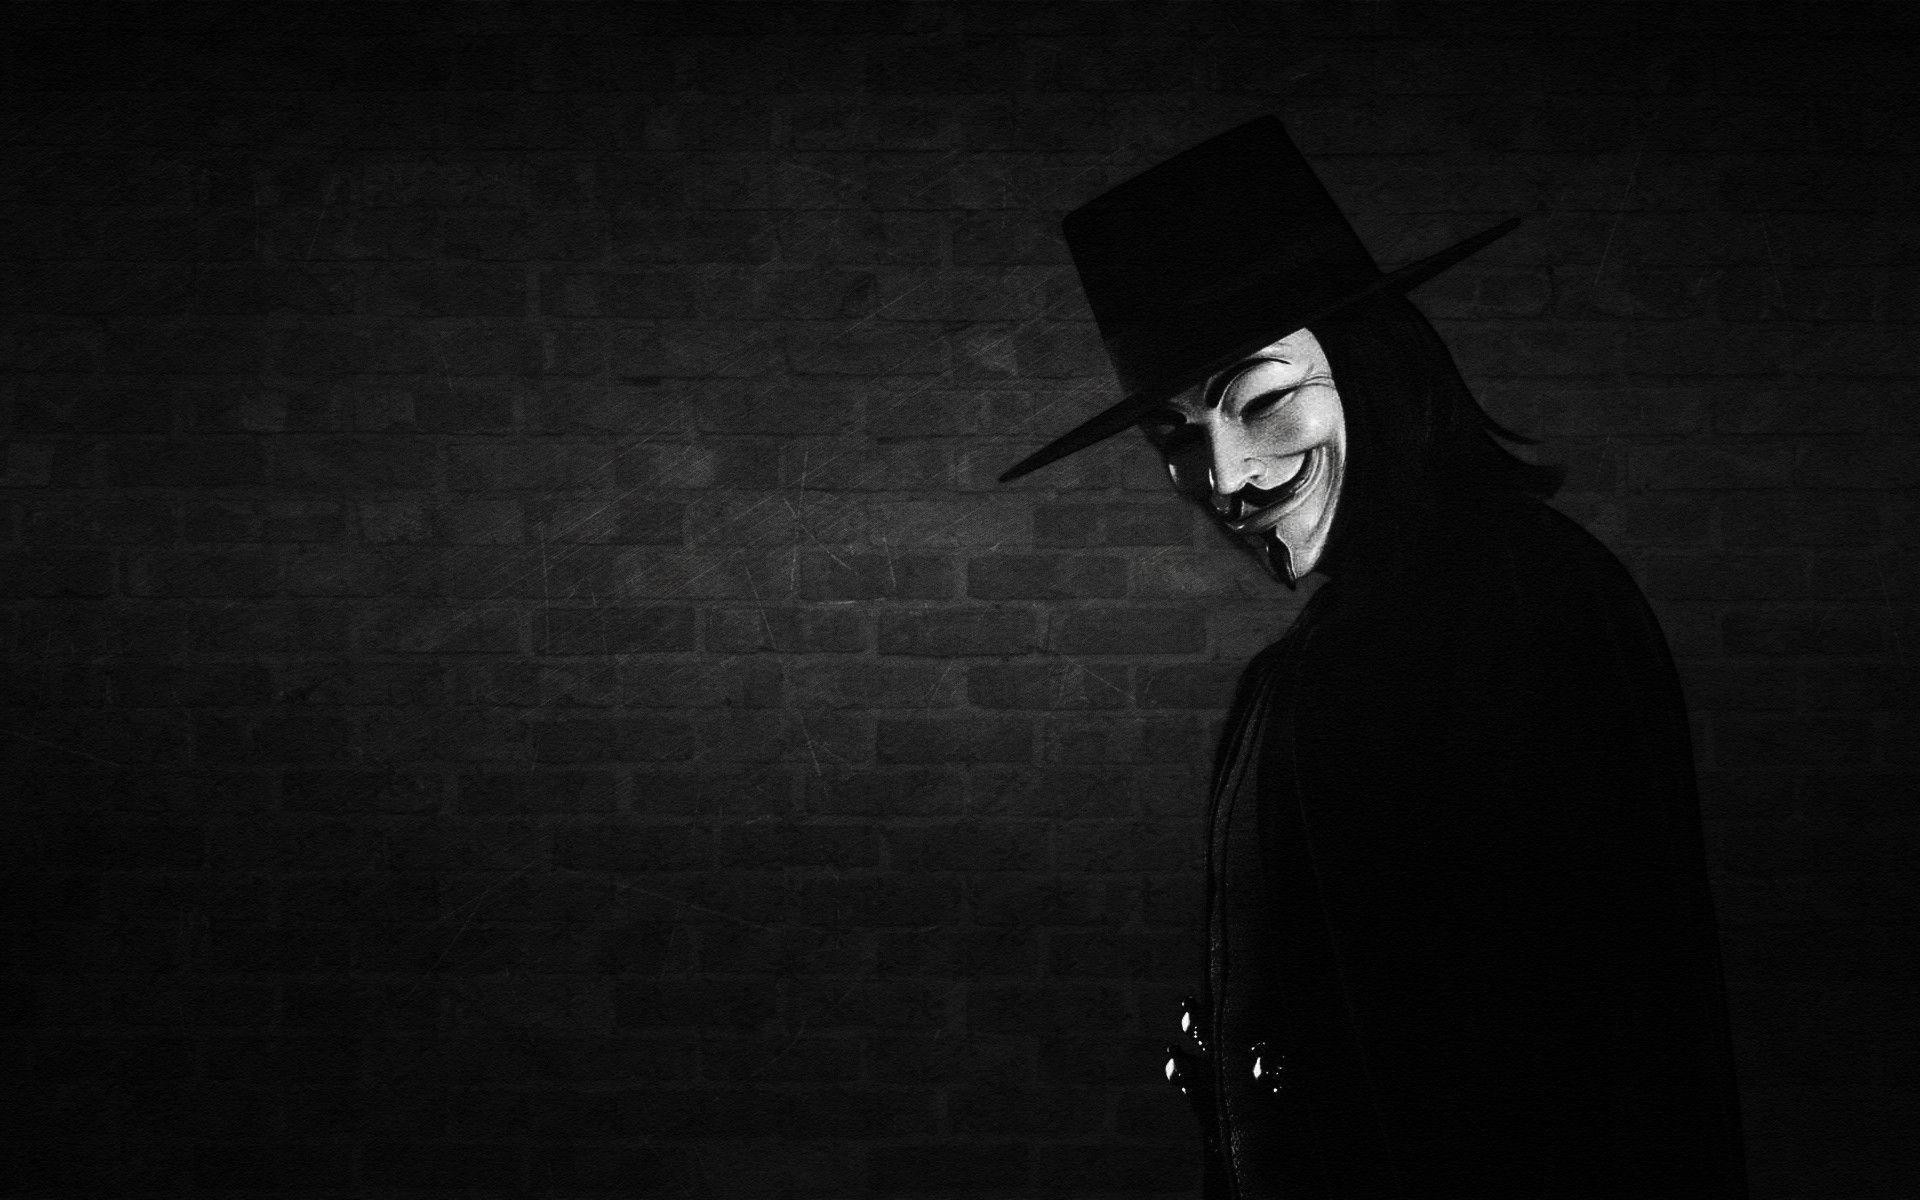 V For Vendetta Wallpaper Hd Wallpapertag